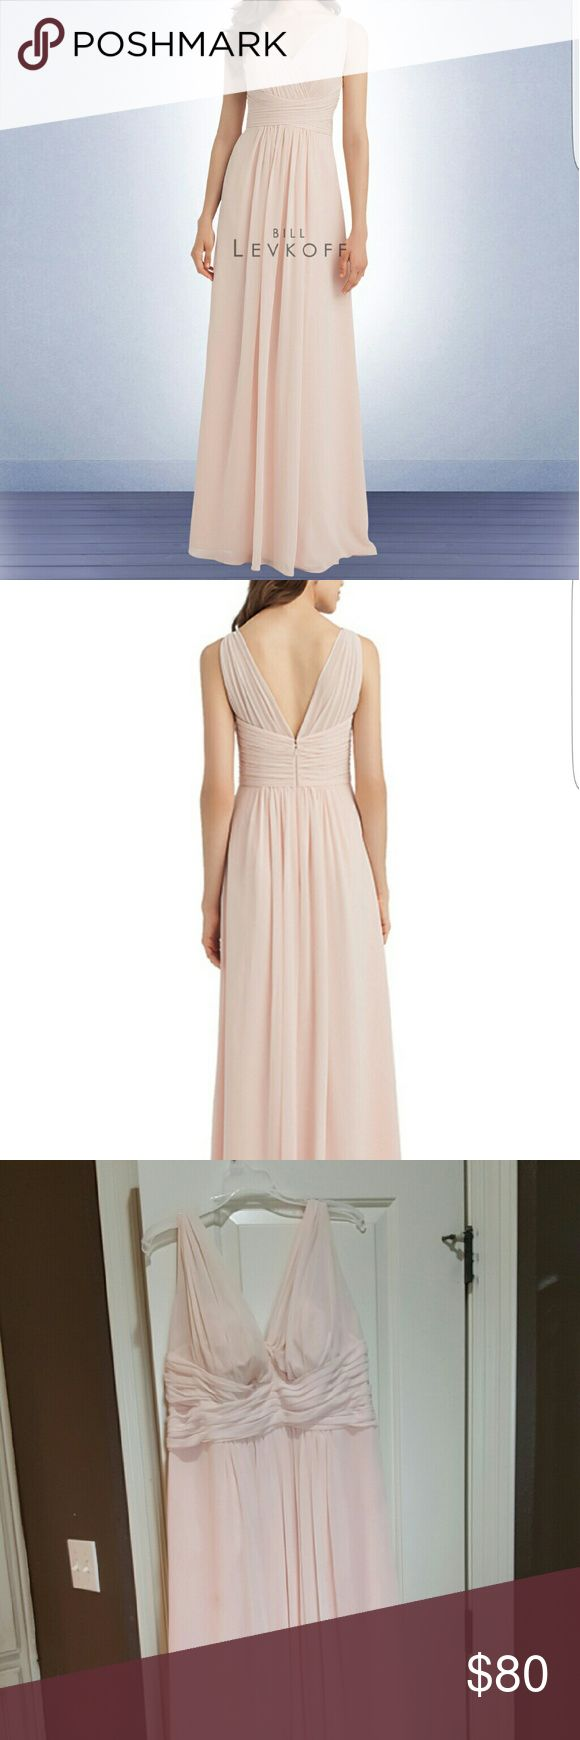 Spotted while shopping on Poshmark: Bill Levkoff Bridesmaid Gown! #poshmark #fashion #shopping #style #Bill Levkoff #Dresses & Skirts